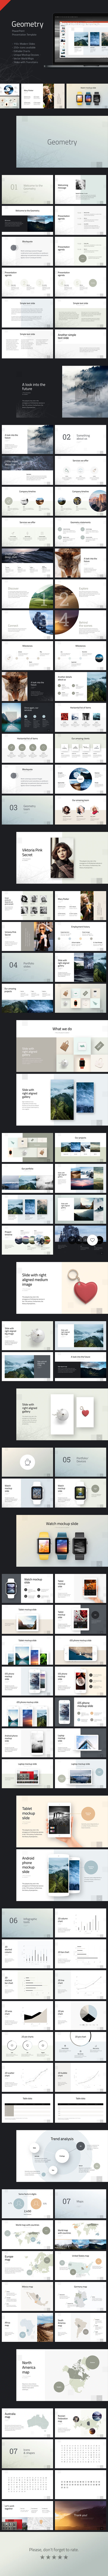 Geometry PowerPoint Presentation Template by ReworkMedia | GraphicRiver